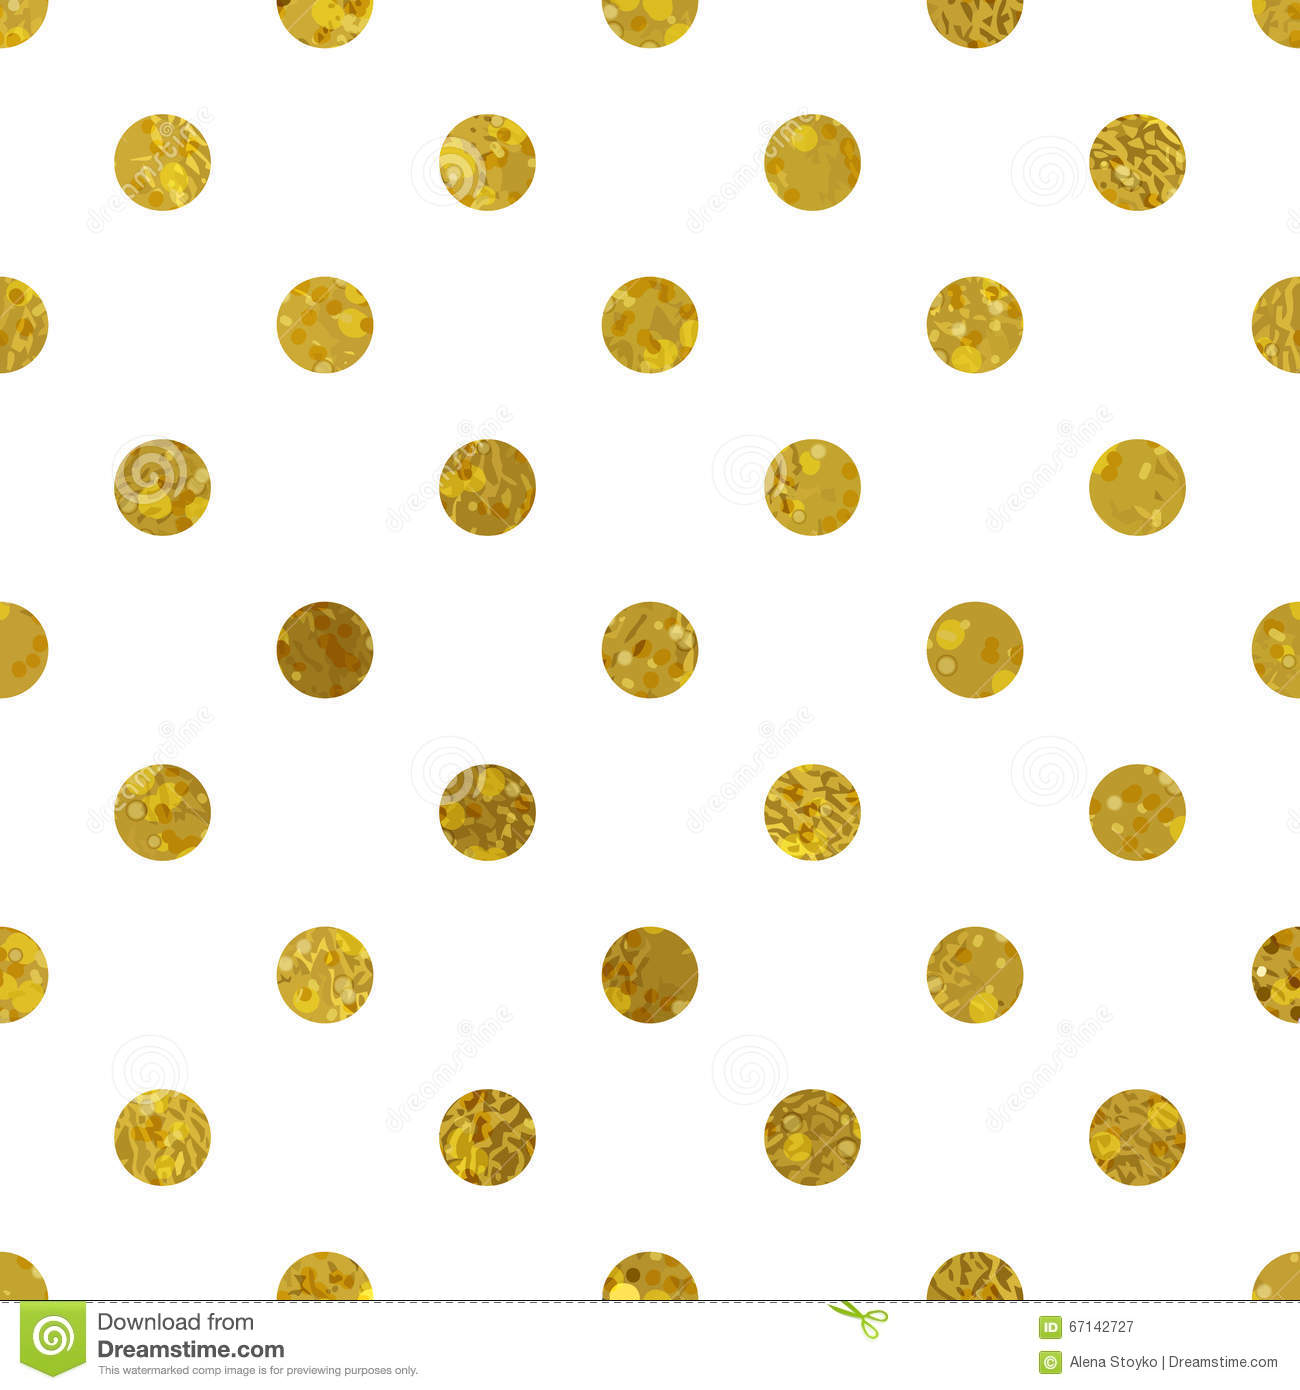 Black And White Polka Dot Wallpaper Border White And Gold Pattern Abstract Polka Dot Background